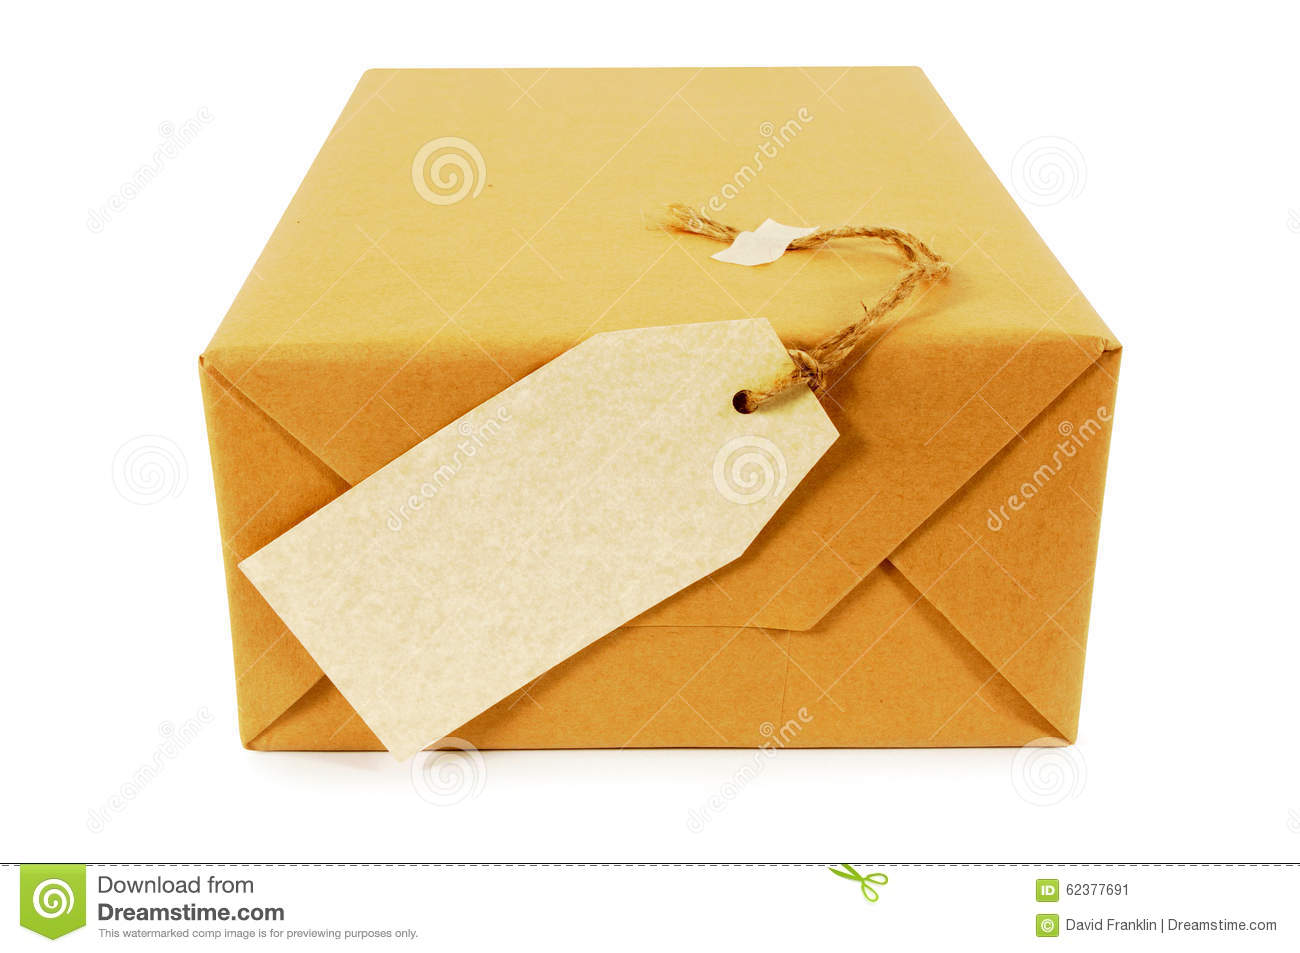 parcel return service muslim singles 322 forwarding and return service the postage price of first-class package service — commercial parcels includes forwarding service to a new address for up to 12 months and return of undeliverable parcels to the sender.